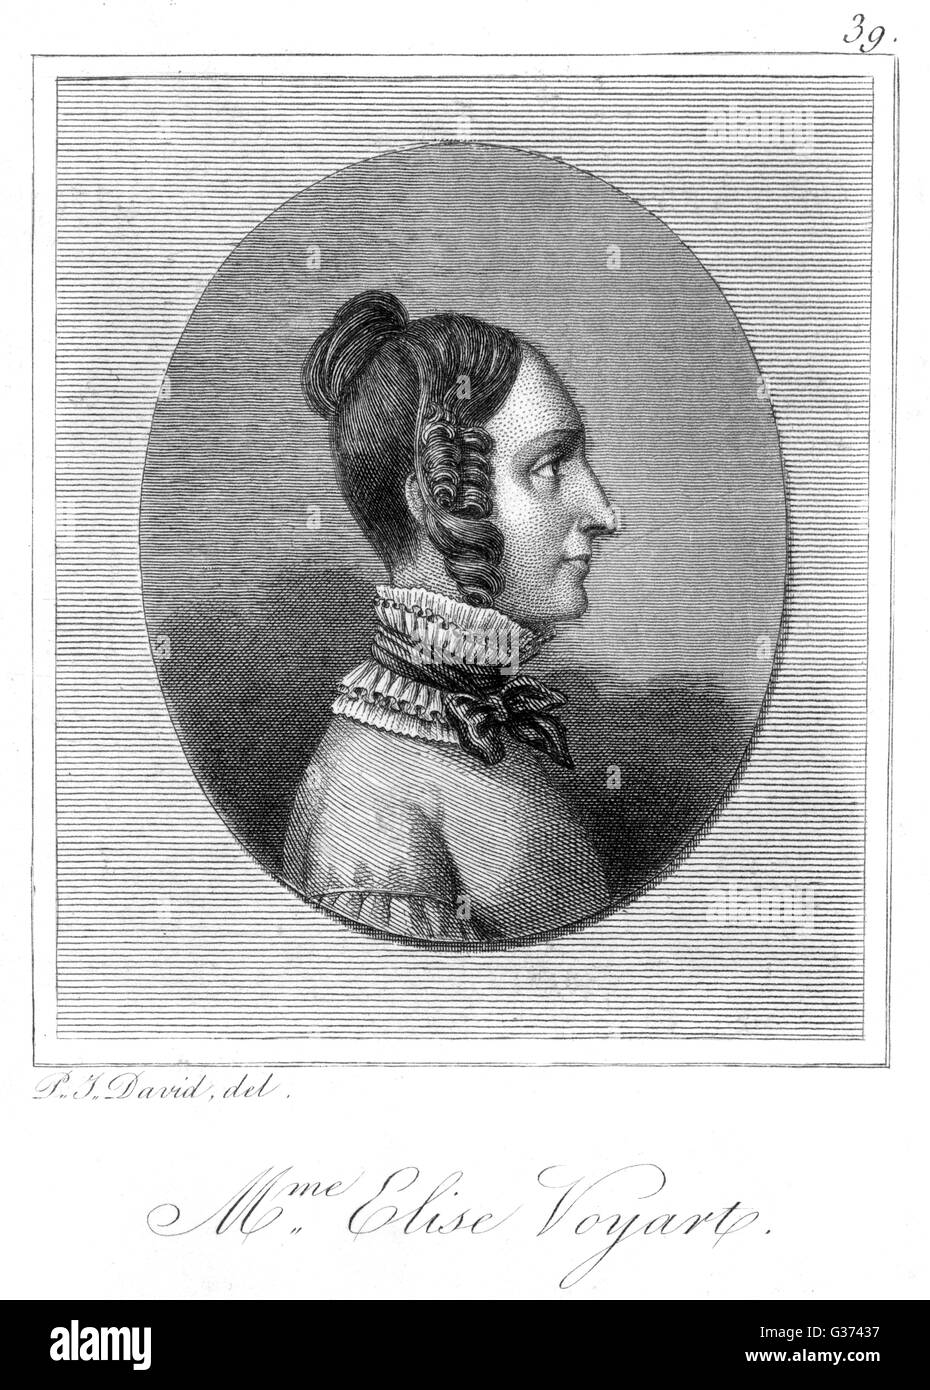 ELISE VOIART French historian of dance         Date: 1786 - 1866 - Stock Image